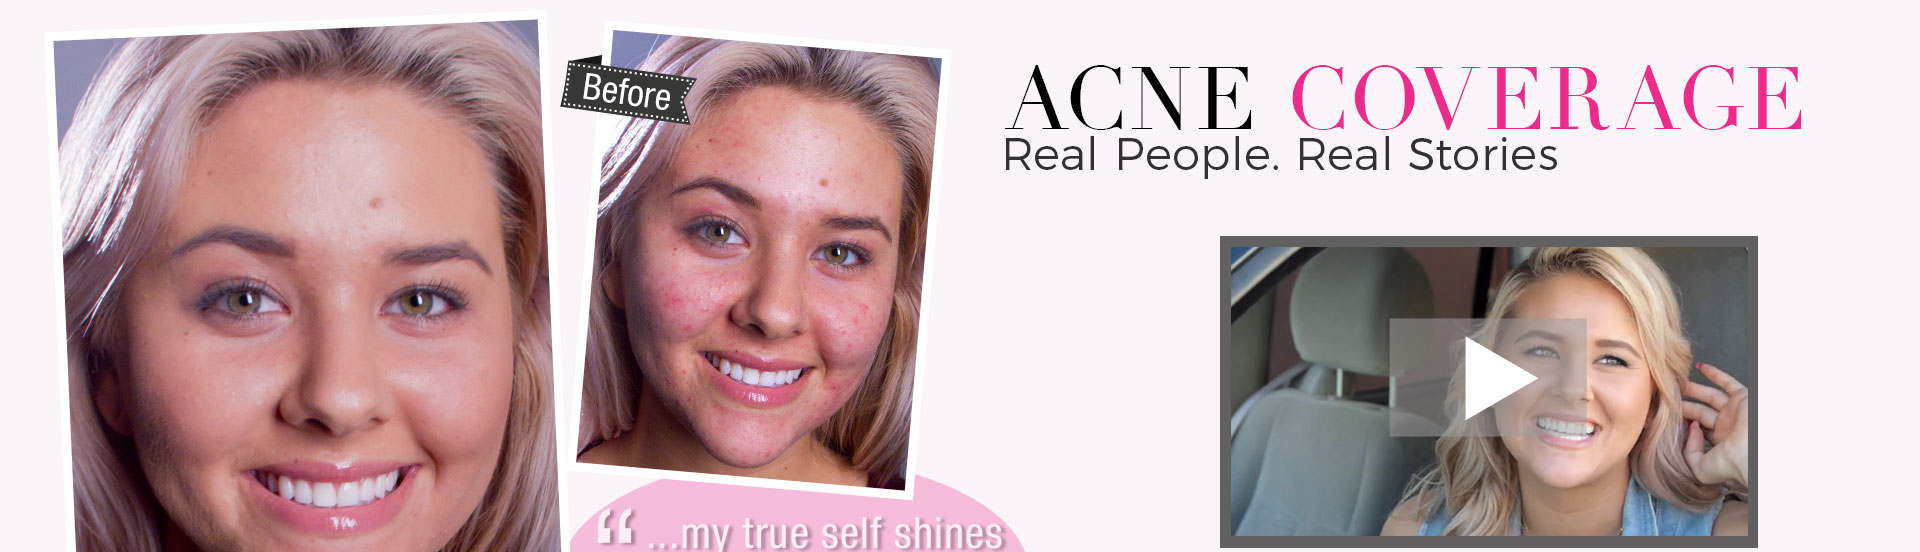 Acne Coverage - Learn More